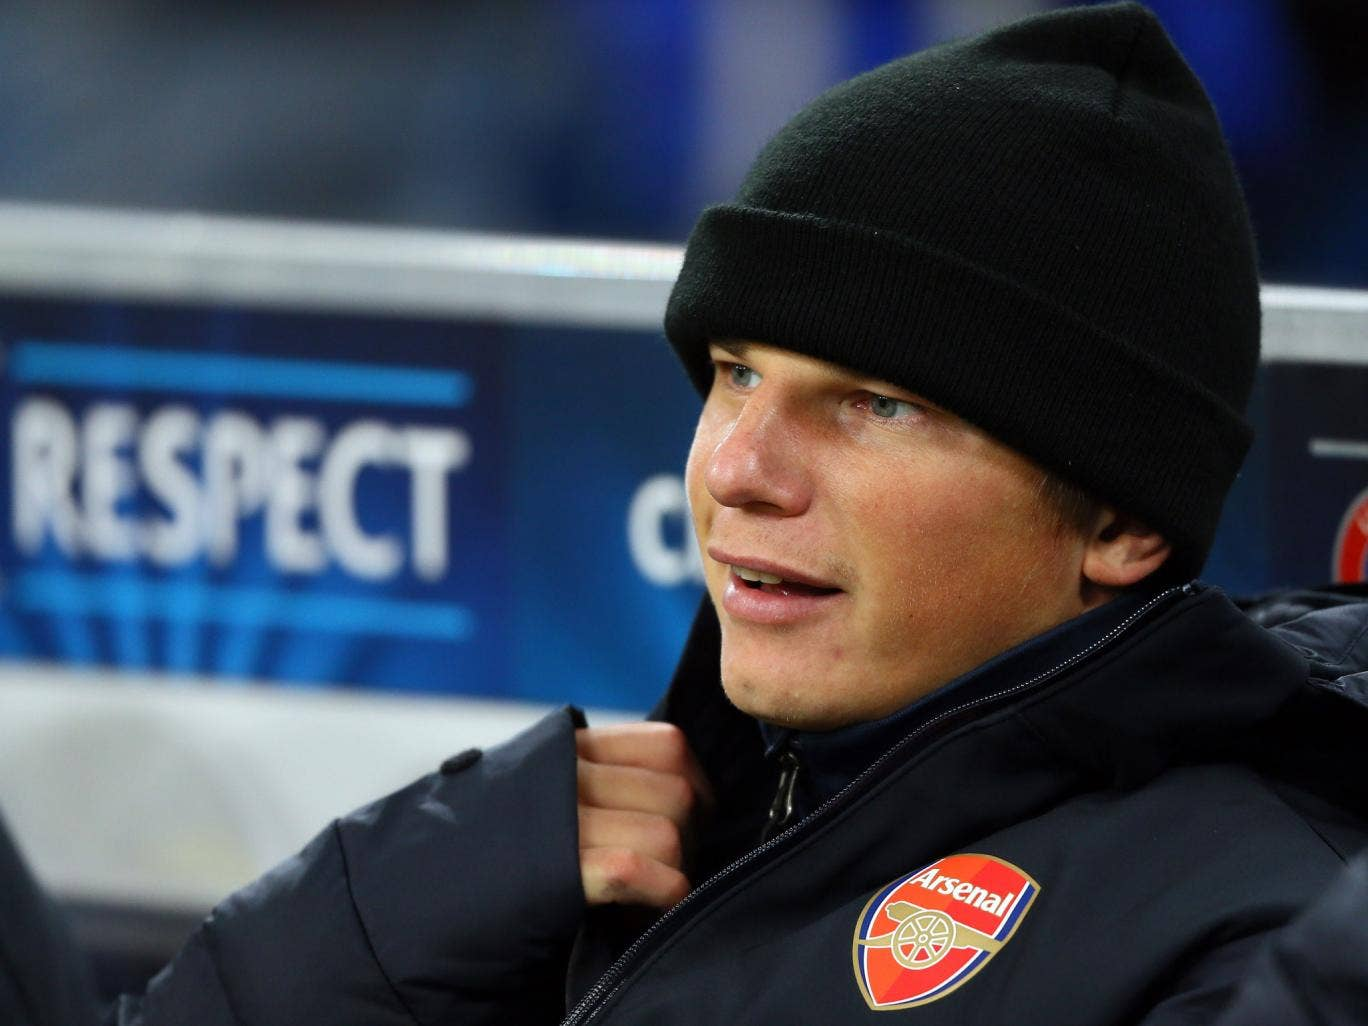 <b>Andrei Arshavin</b><br/> The diminutive Russian was hailed as an excellent signing by Arsene Wenger when the Arsenal manager snapped him up in the final hours of 2009's January transfer window deadline day. The 31-year-old has suffered from indifferent